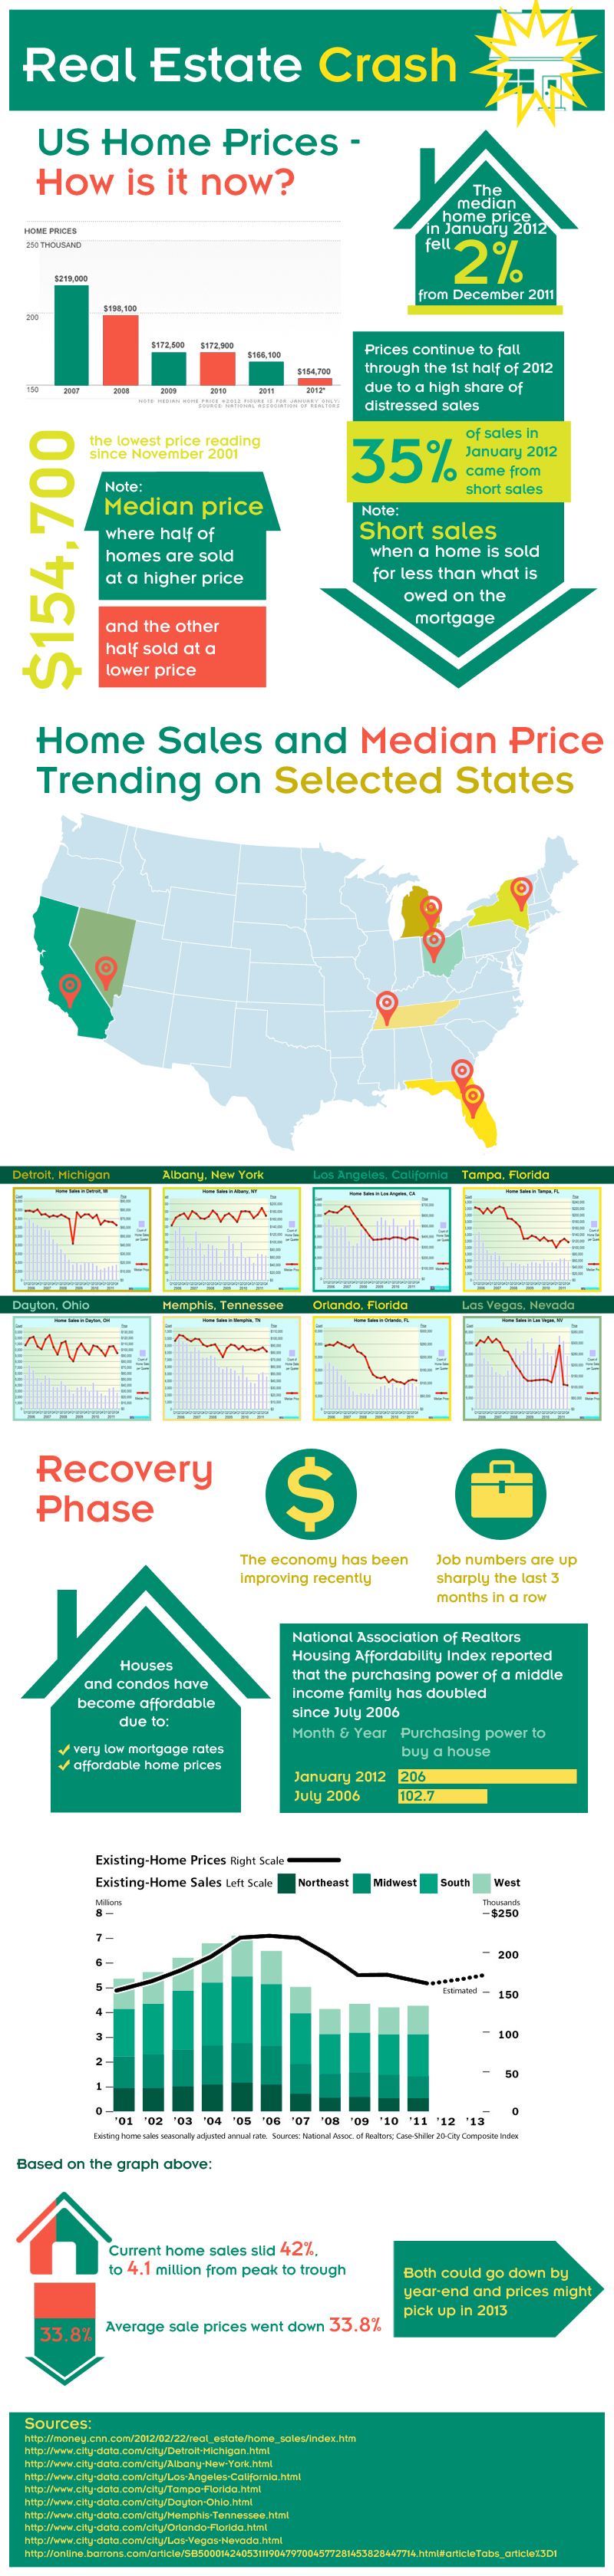 Real-Estate-Crash-Review-infographic